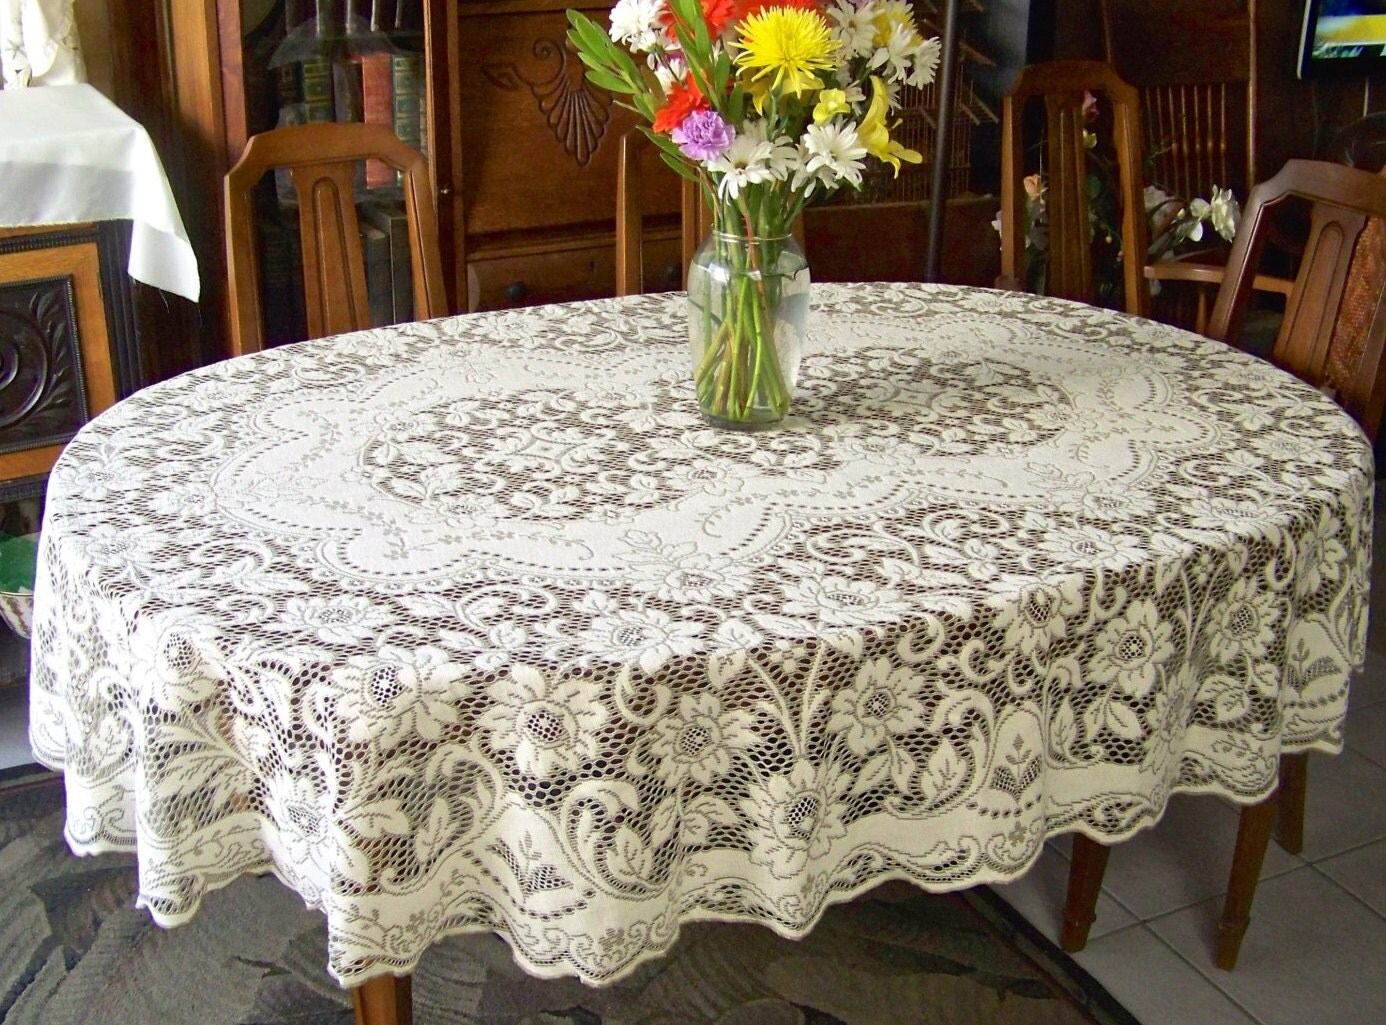 Vintage Quaker Lace Cloth Oval Tablecloth Cottage Decor Table : ilfullxfull934914804ndwj from www.etsy.com size 1386 x 1025 jpeg 478kB